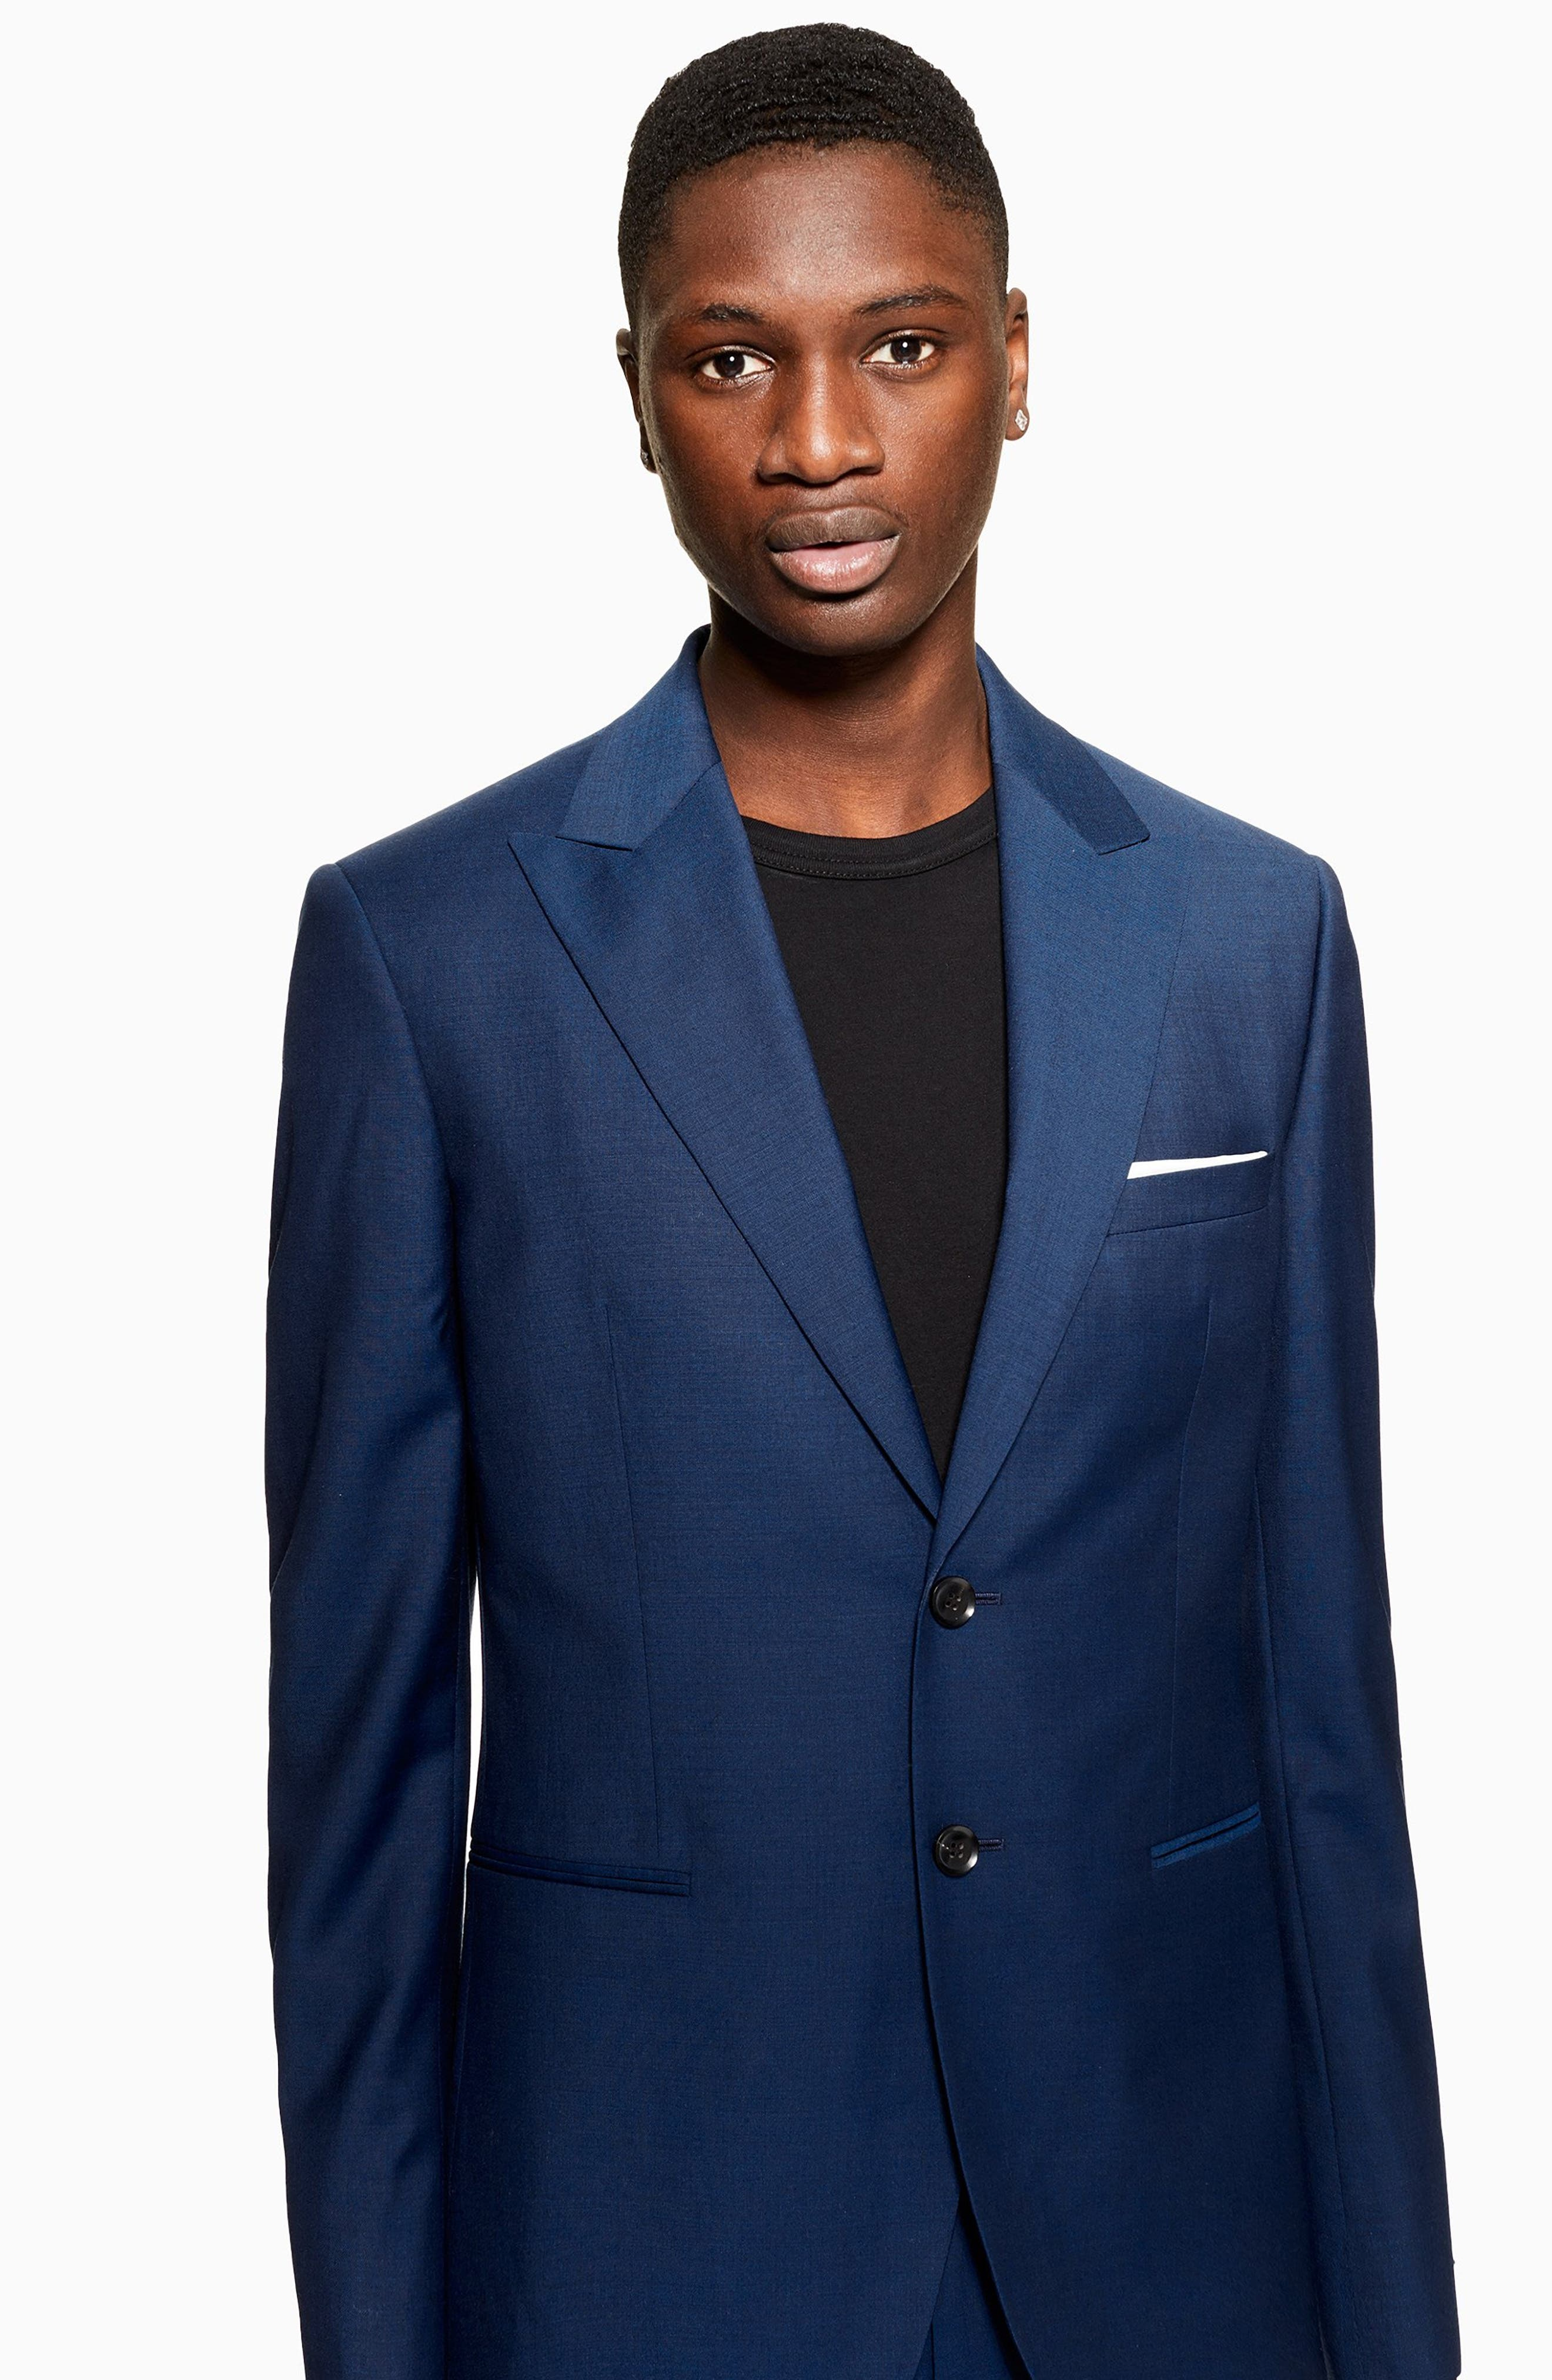 Casely Hayford Skinny Fit Suit Jacket,                             Alternate thumbnail 4, color,                             NAVY BLUE